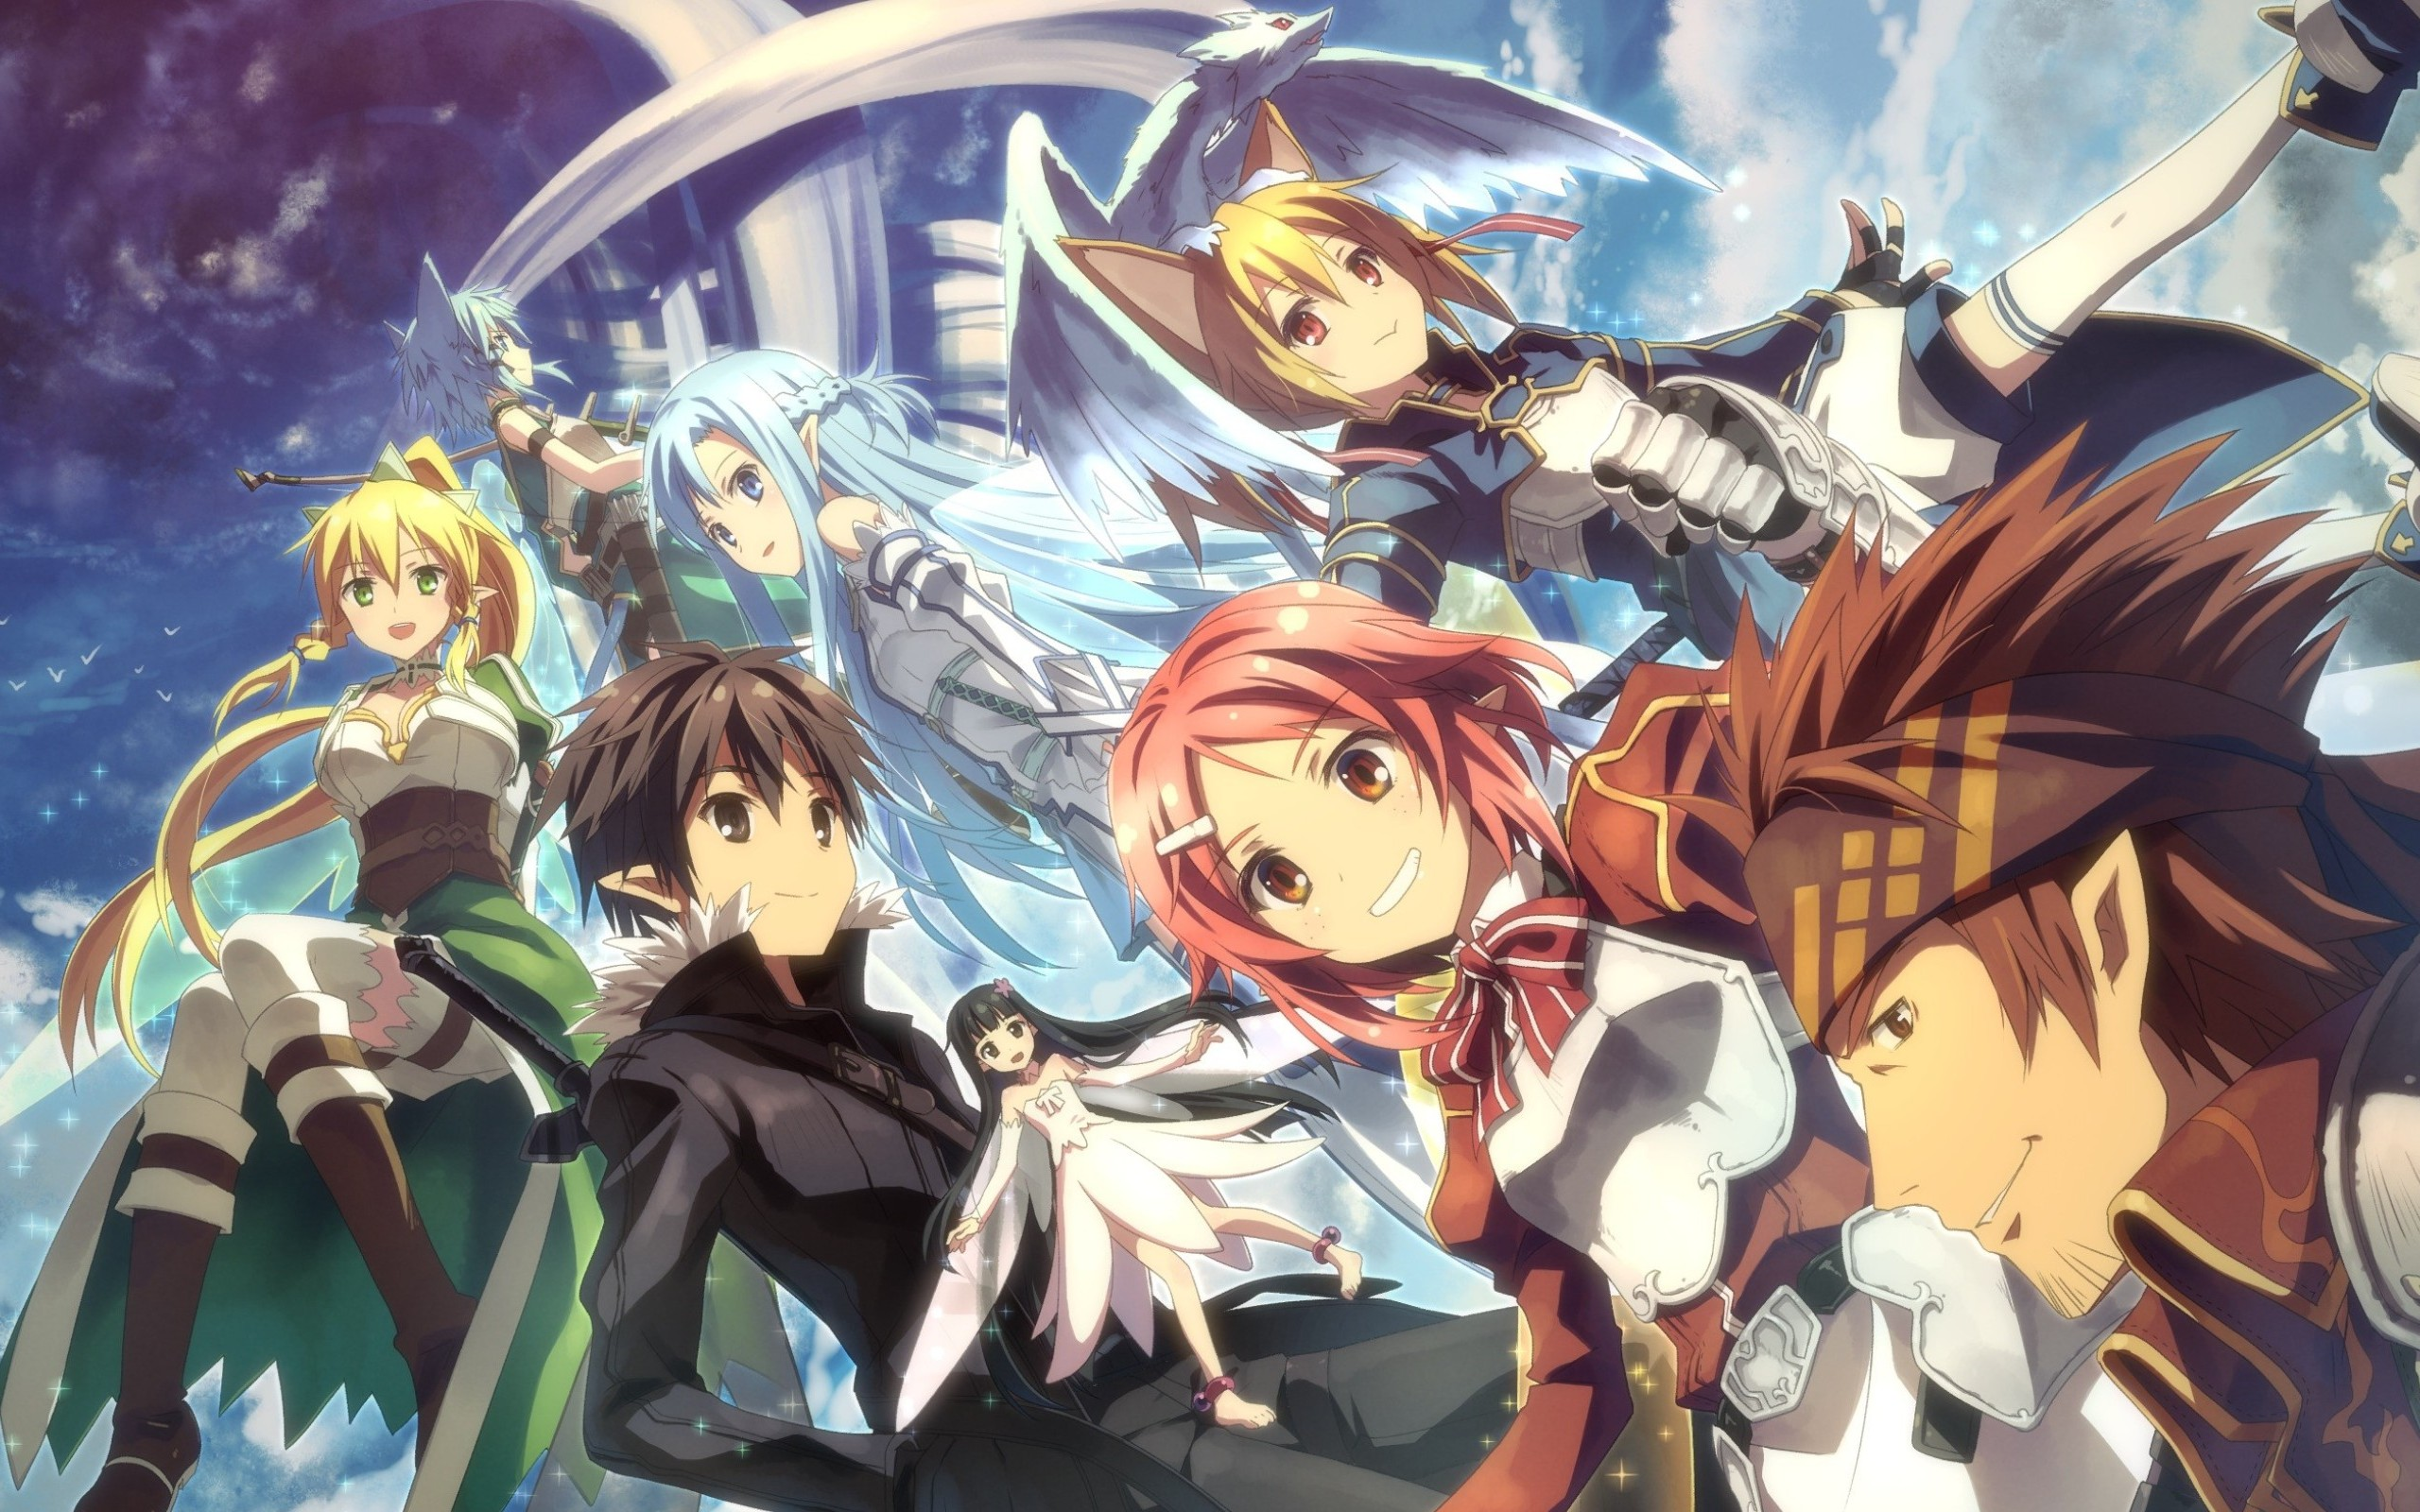 Download Wallpaper From Anime Sword Art Online Ii With Tags Free